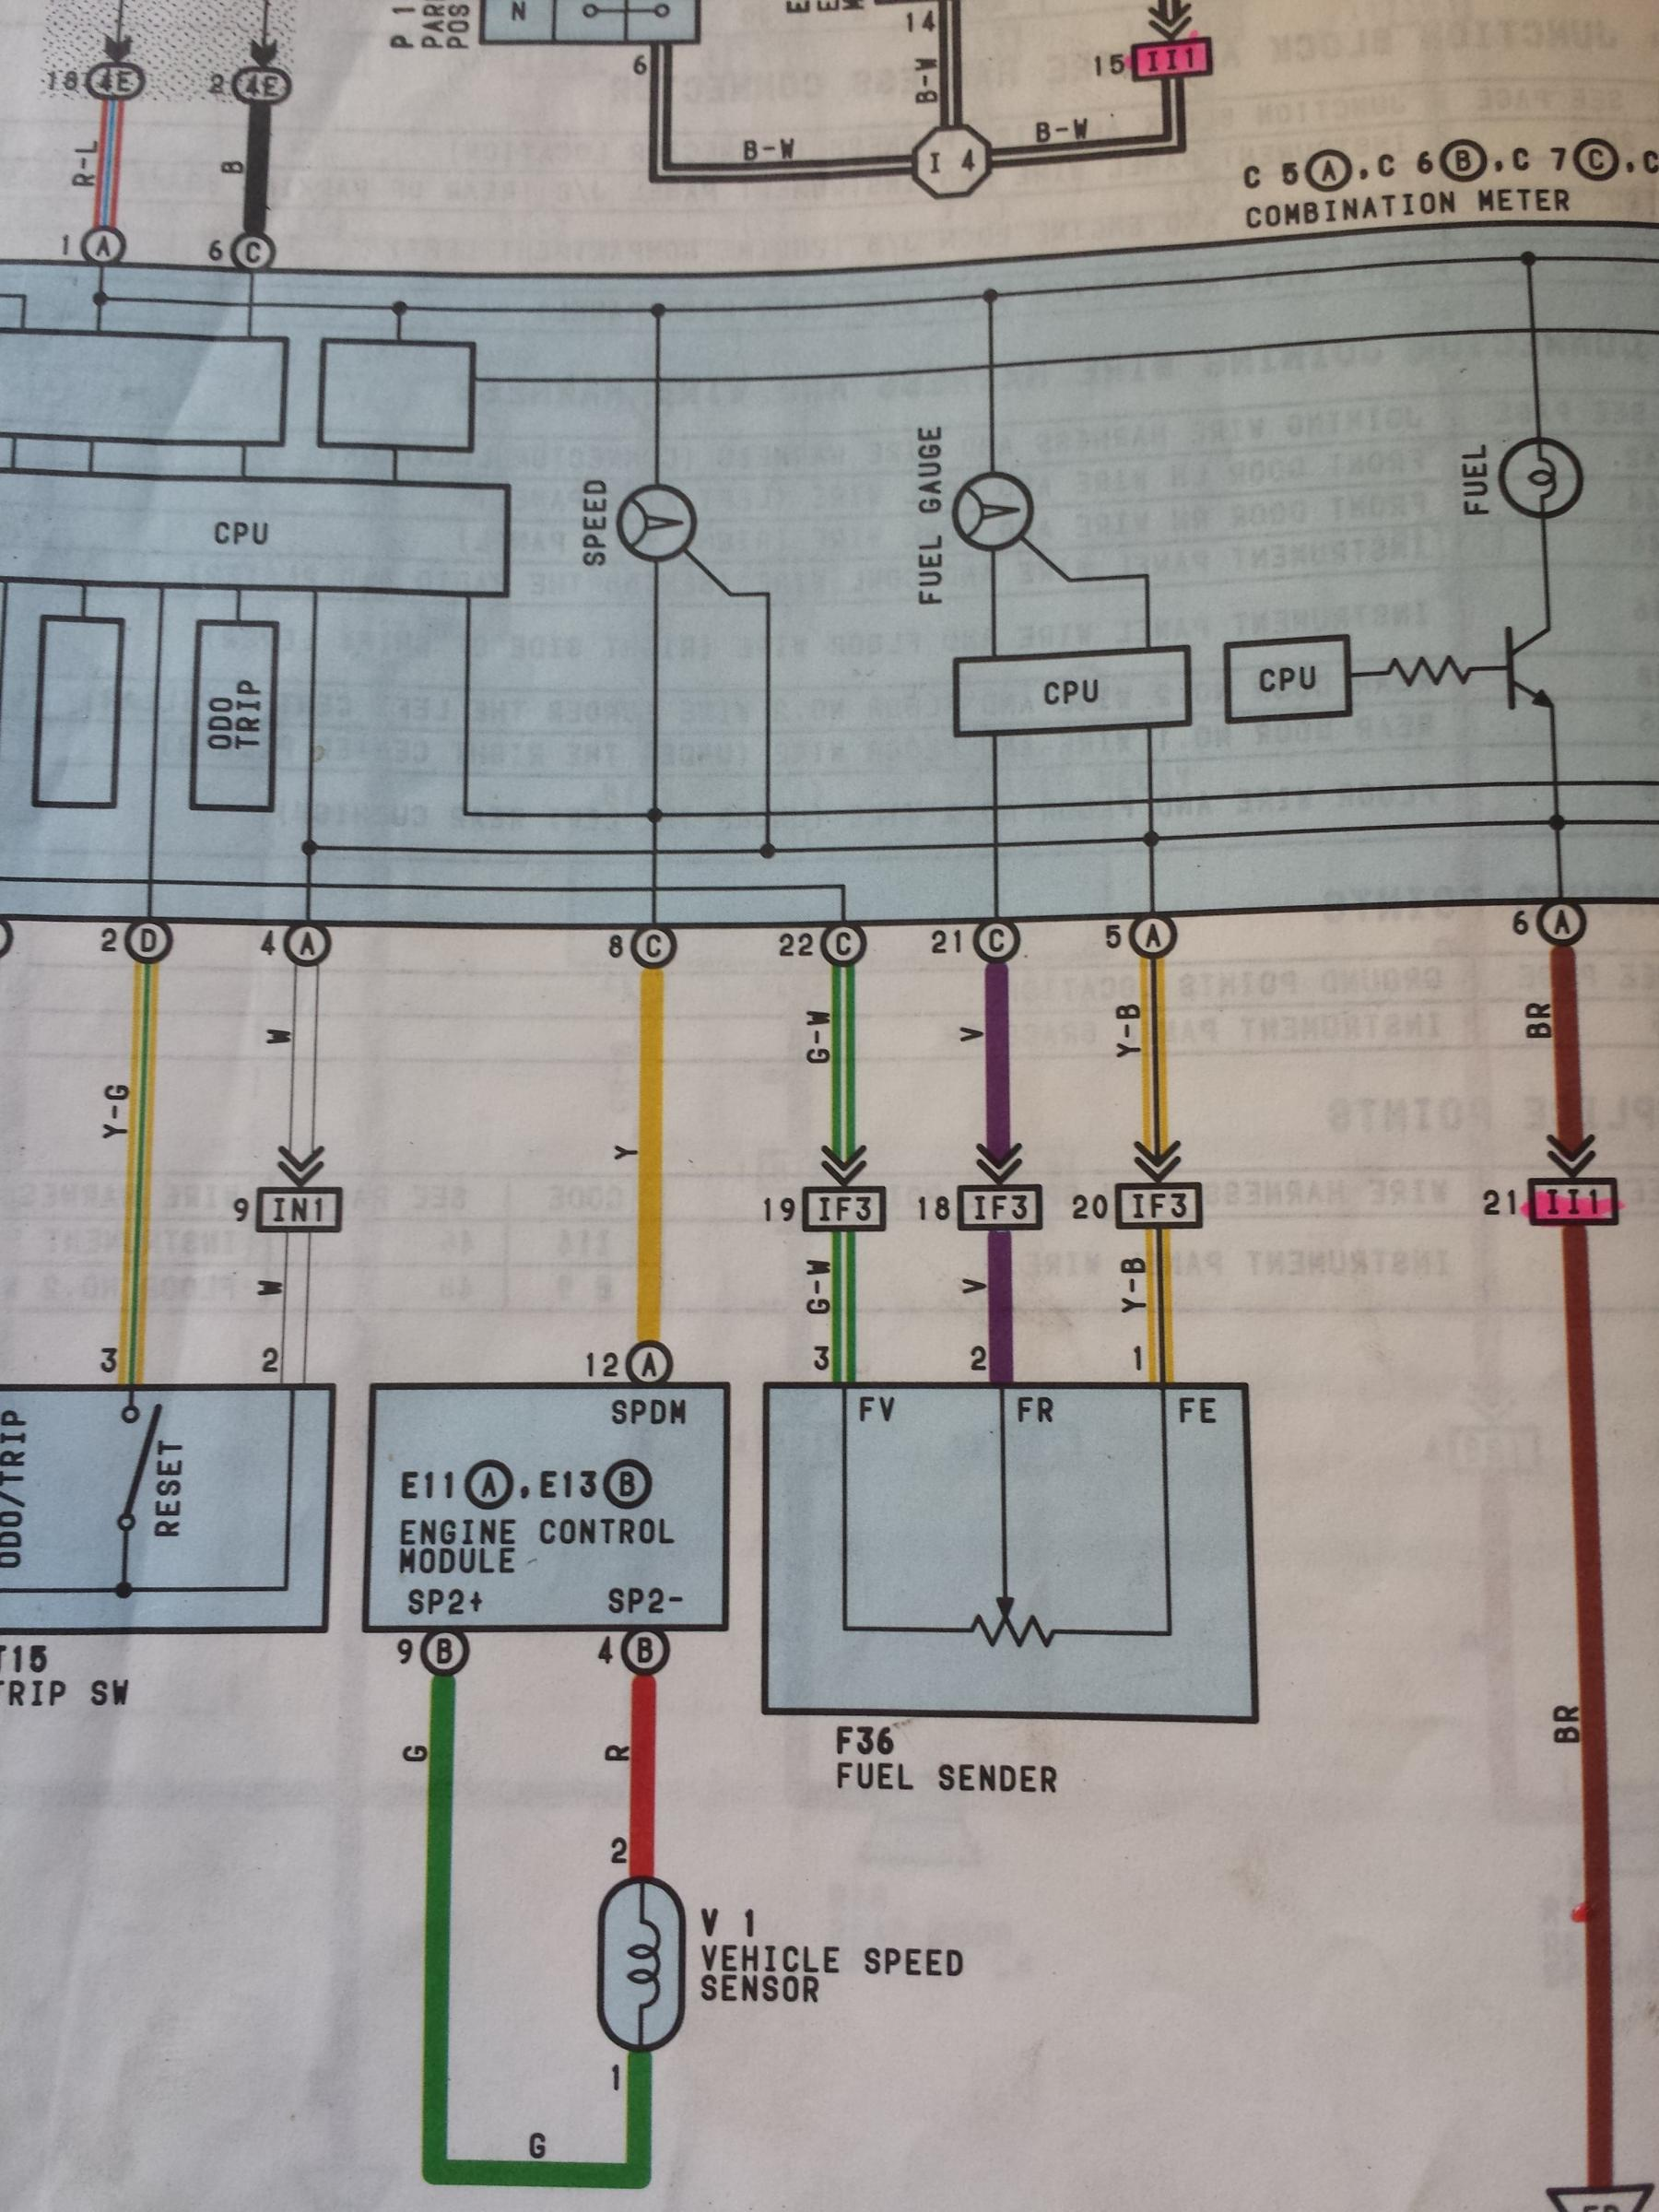 hight resolution of wiring question ls400 dash in a toyota rv 20150601 192103 jpg